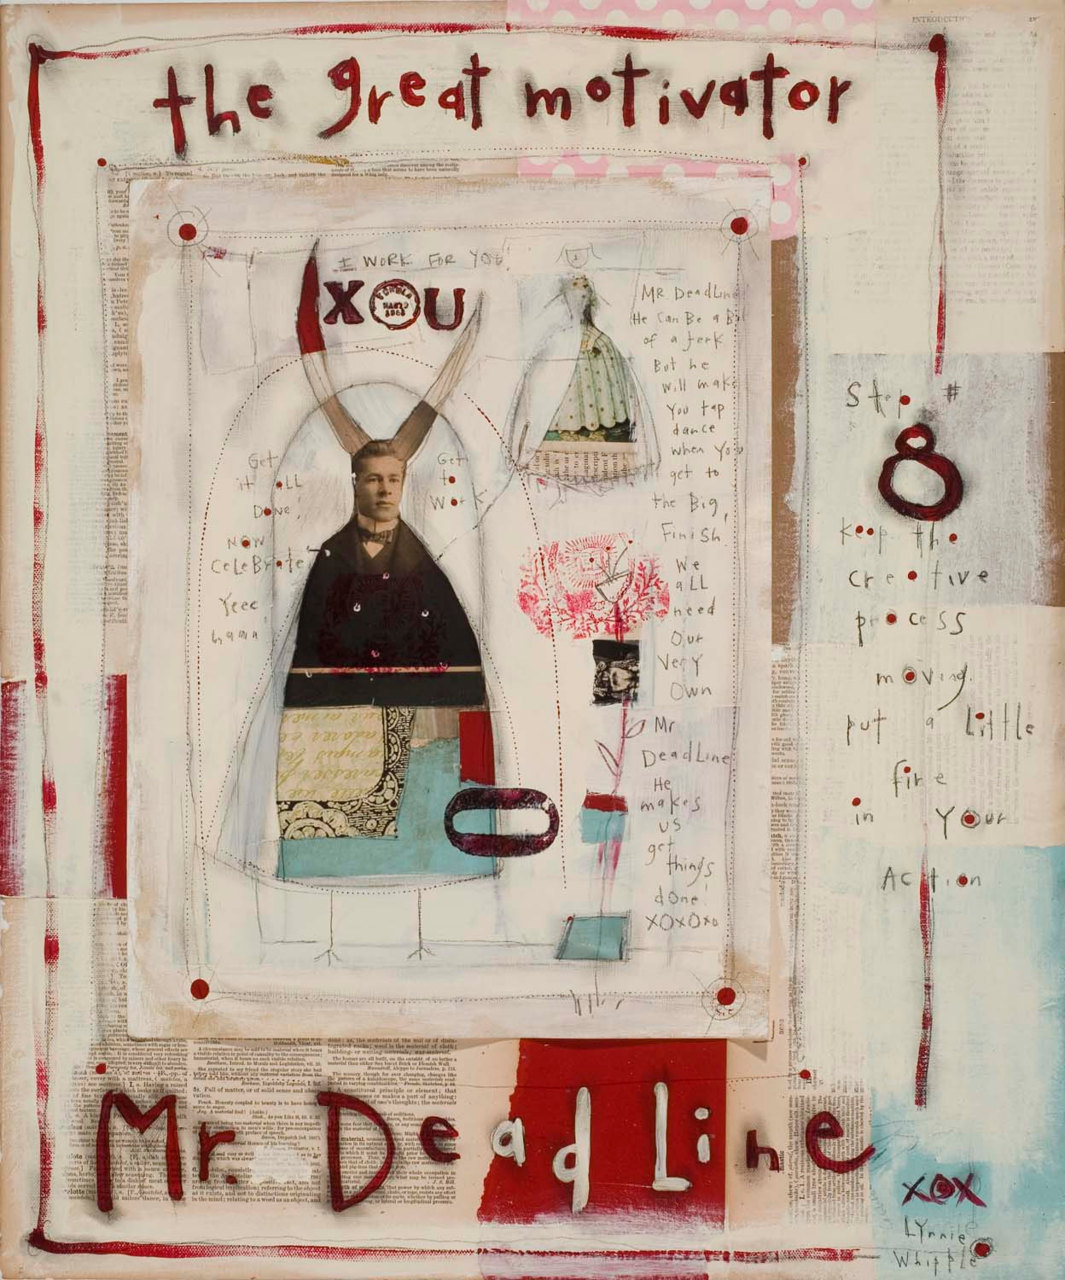 Mr. Deadline by Lynn Whipple